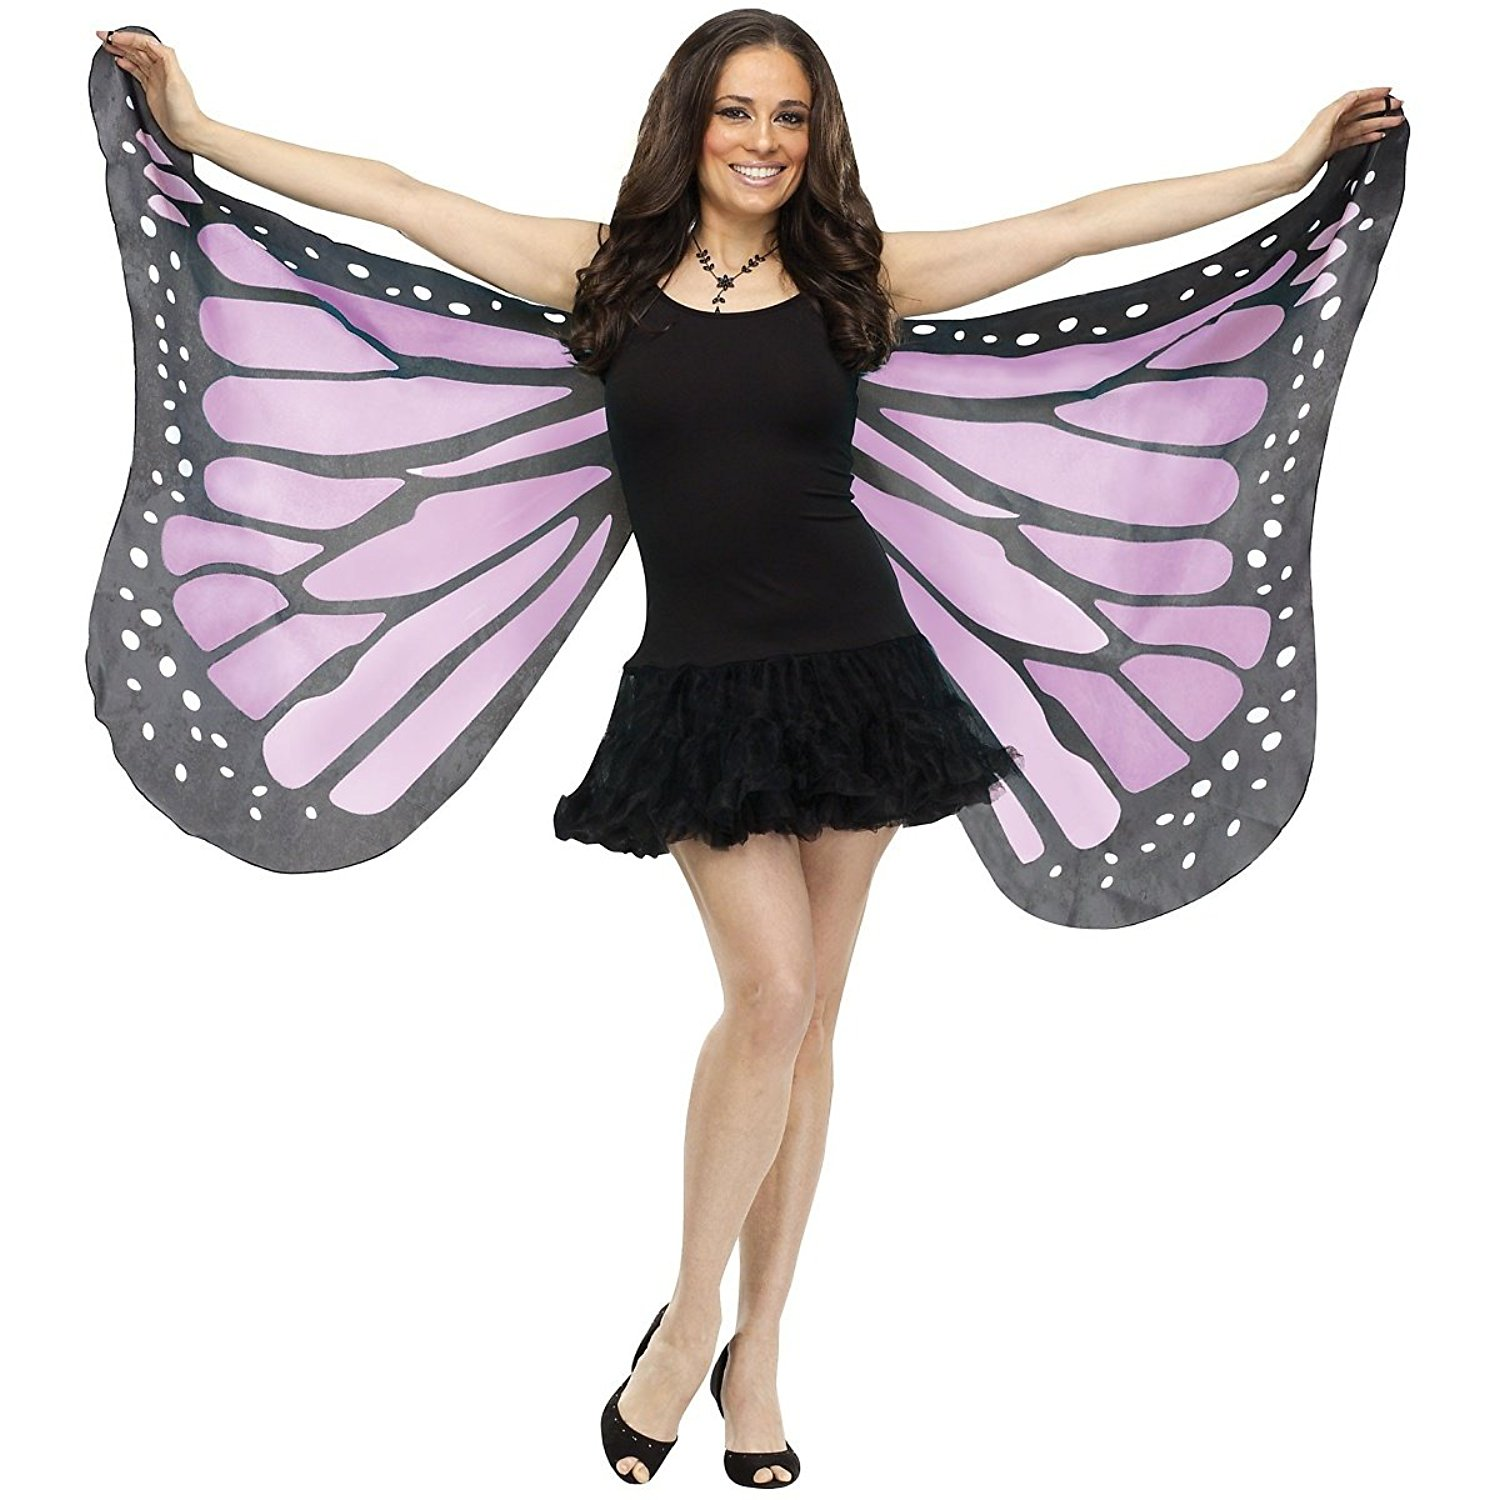 Adult Soft Butterfly Wings Adult Costume Accessory - PURPLE